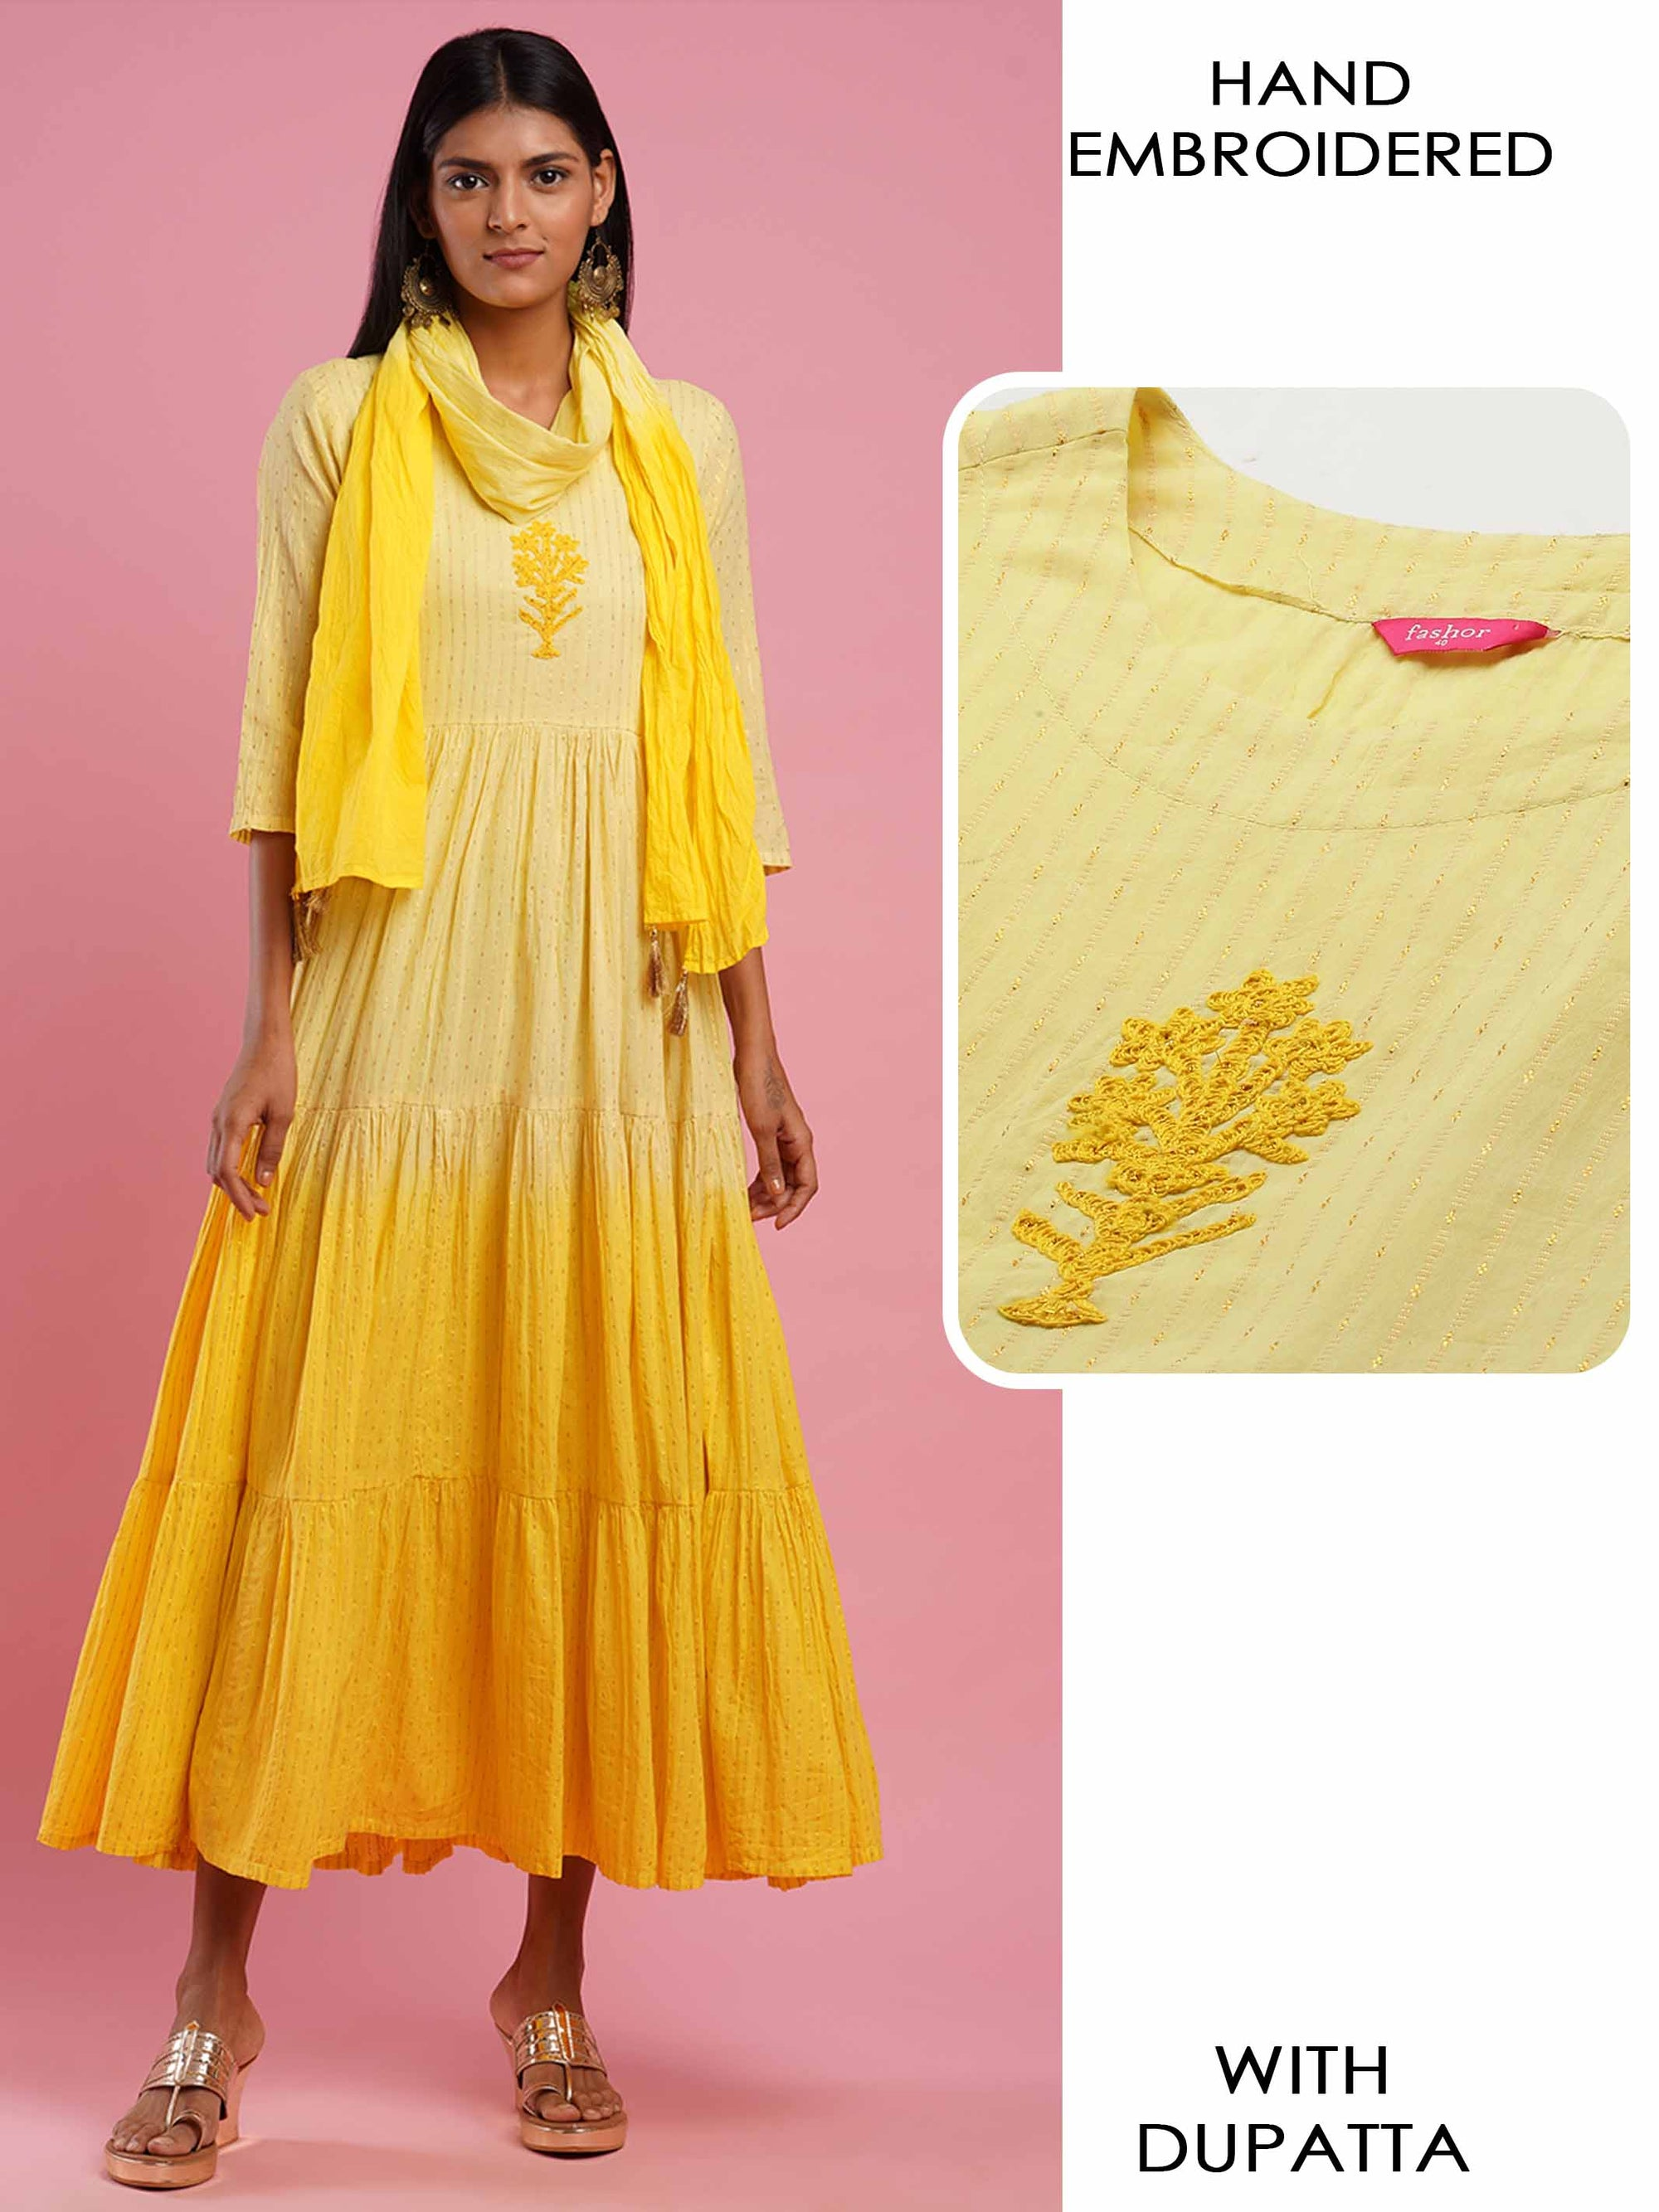 Handcrafted & Ombre dyed Tiered Maxi Dress With Ombre Dyed Dupatta - Yellow